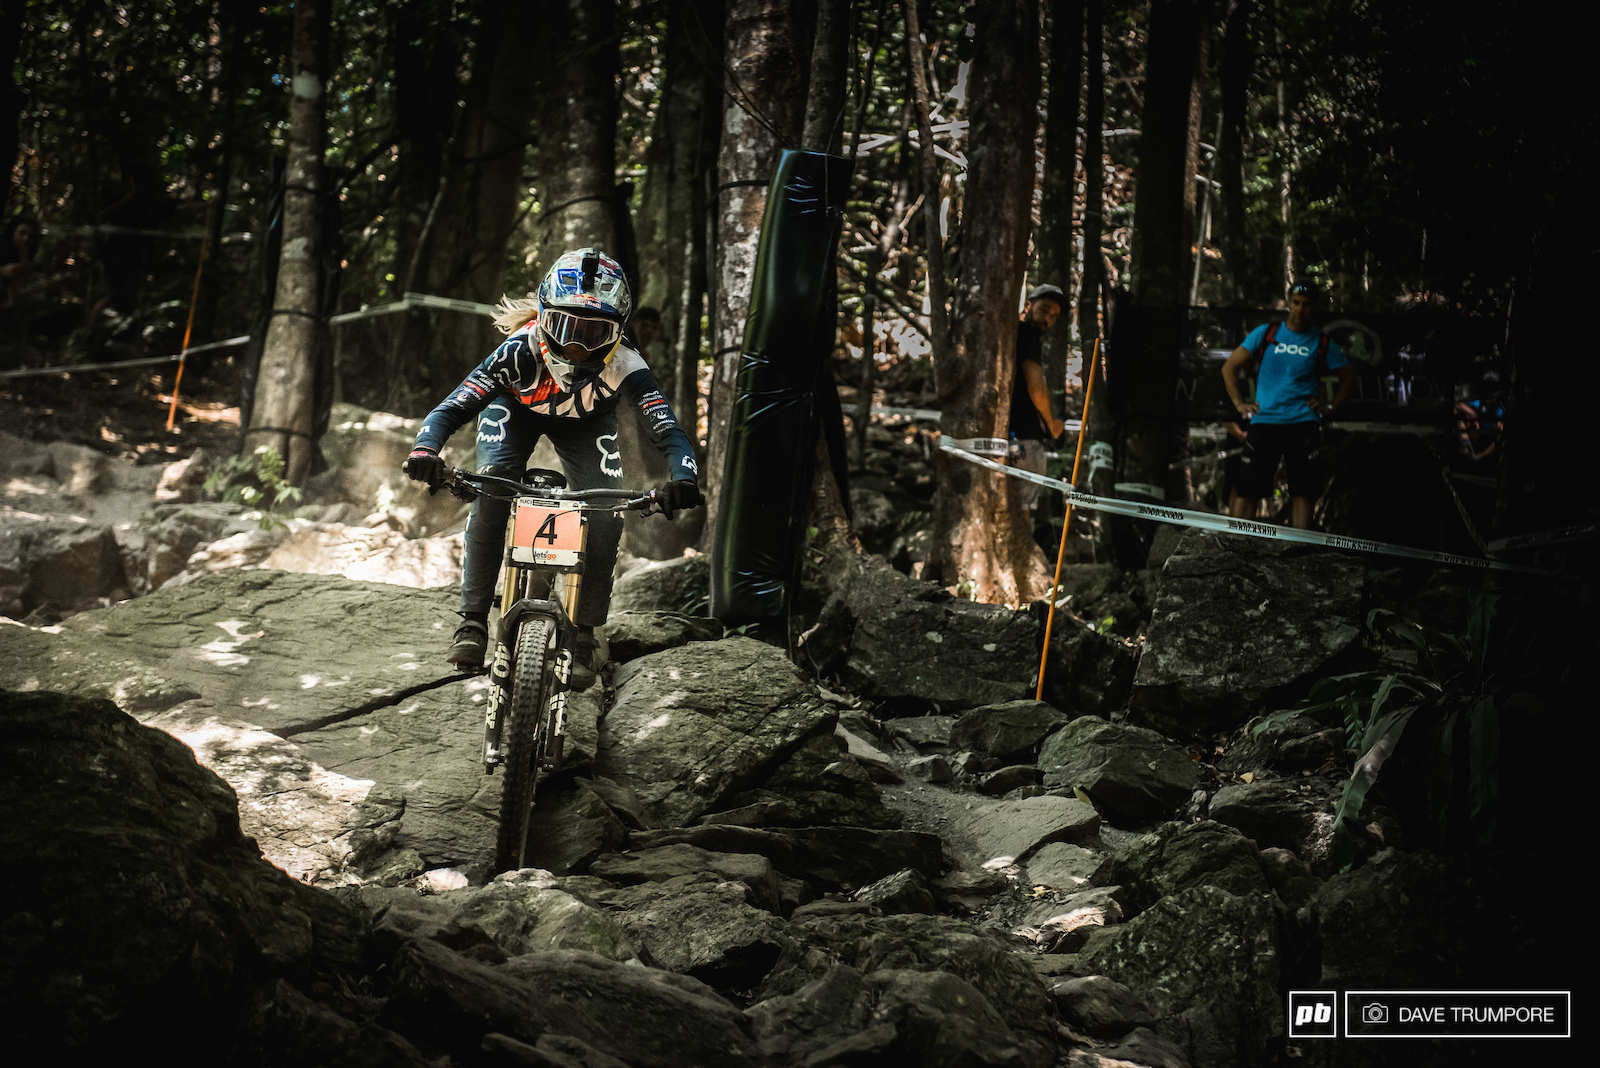 Tahnee Seagrave has been on fire at the end of the season and is looking to cap things off with a World Champs title.